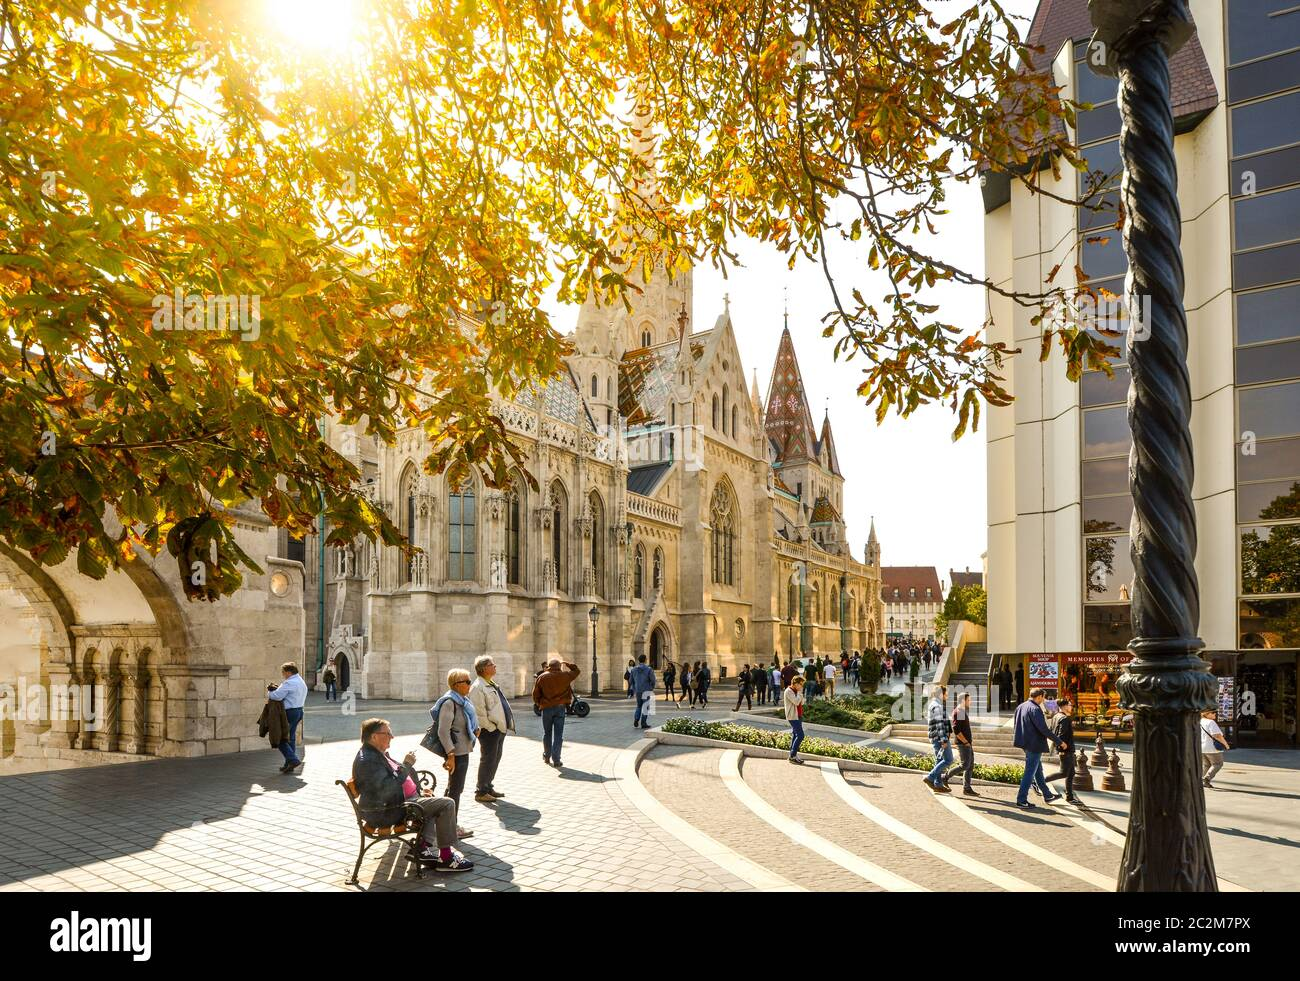 Afternoon at the Budapest Hungary Castle District standing outside the Fisherman's Bastion with Saint Matthias Church and tourists walking Stock Photo